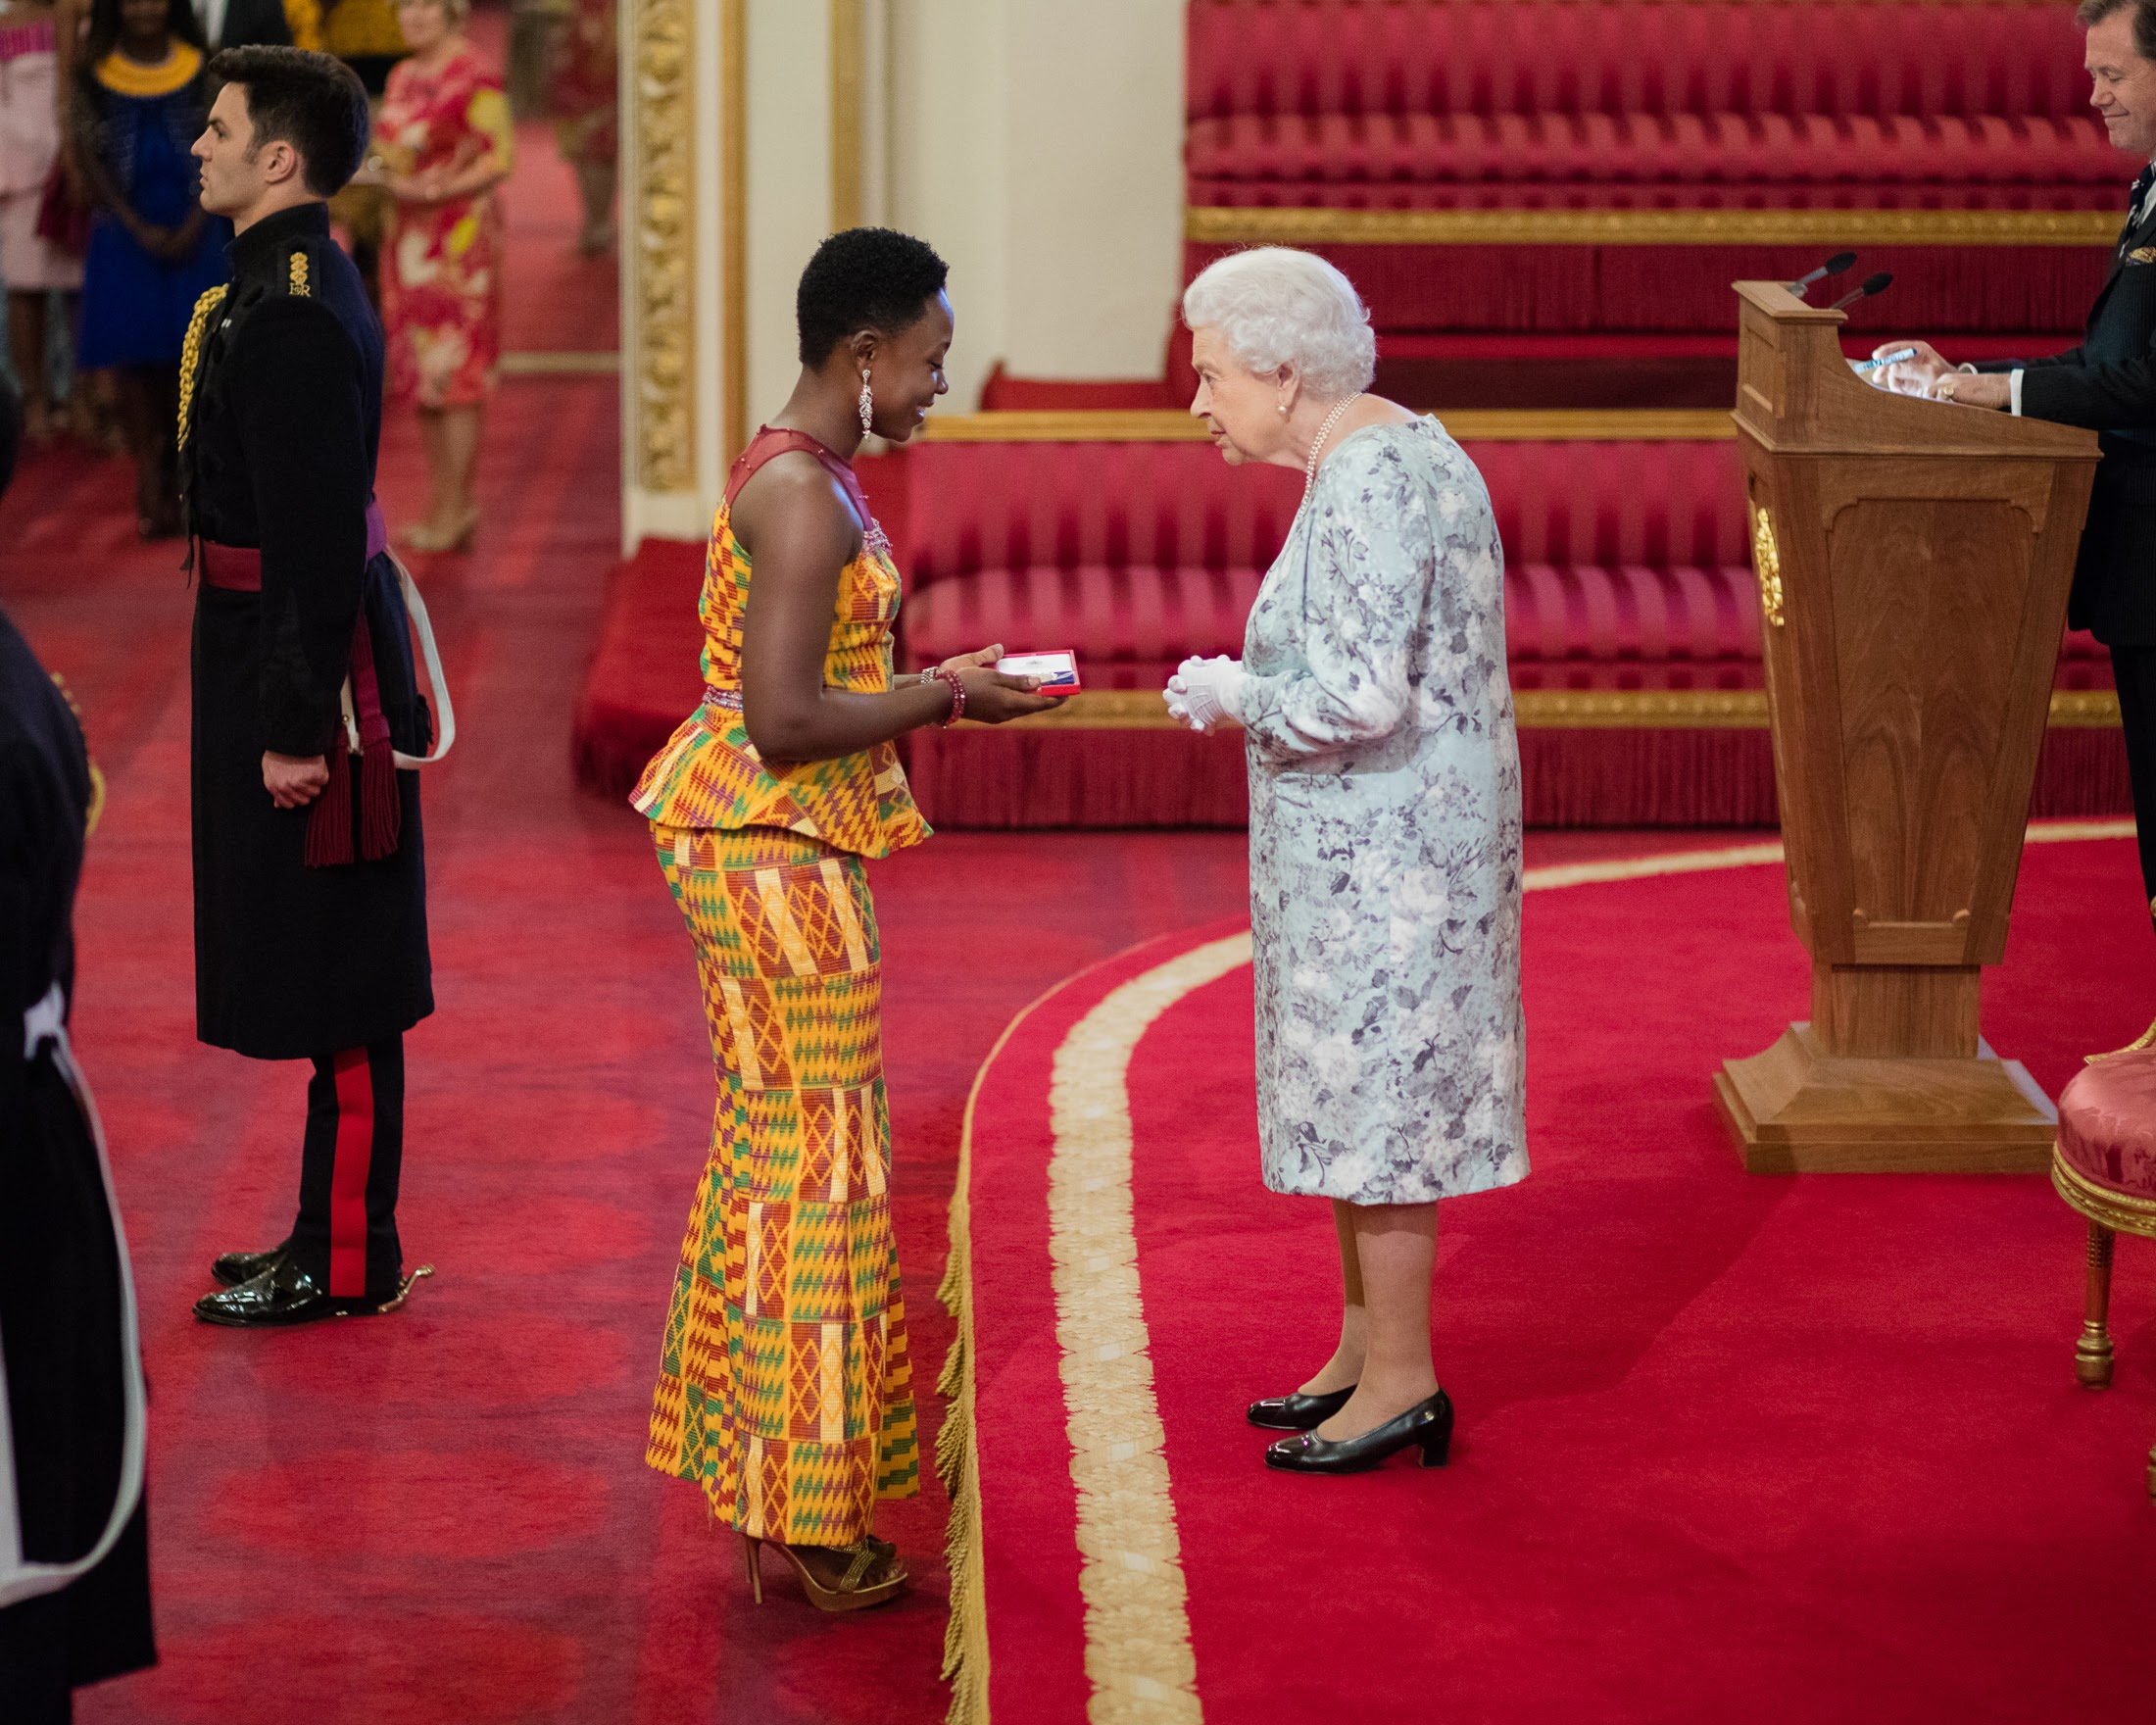 Winnifred Selby 2017 Queen's Young Leader Ghana